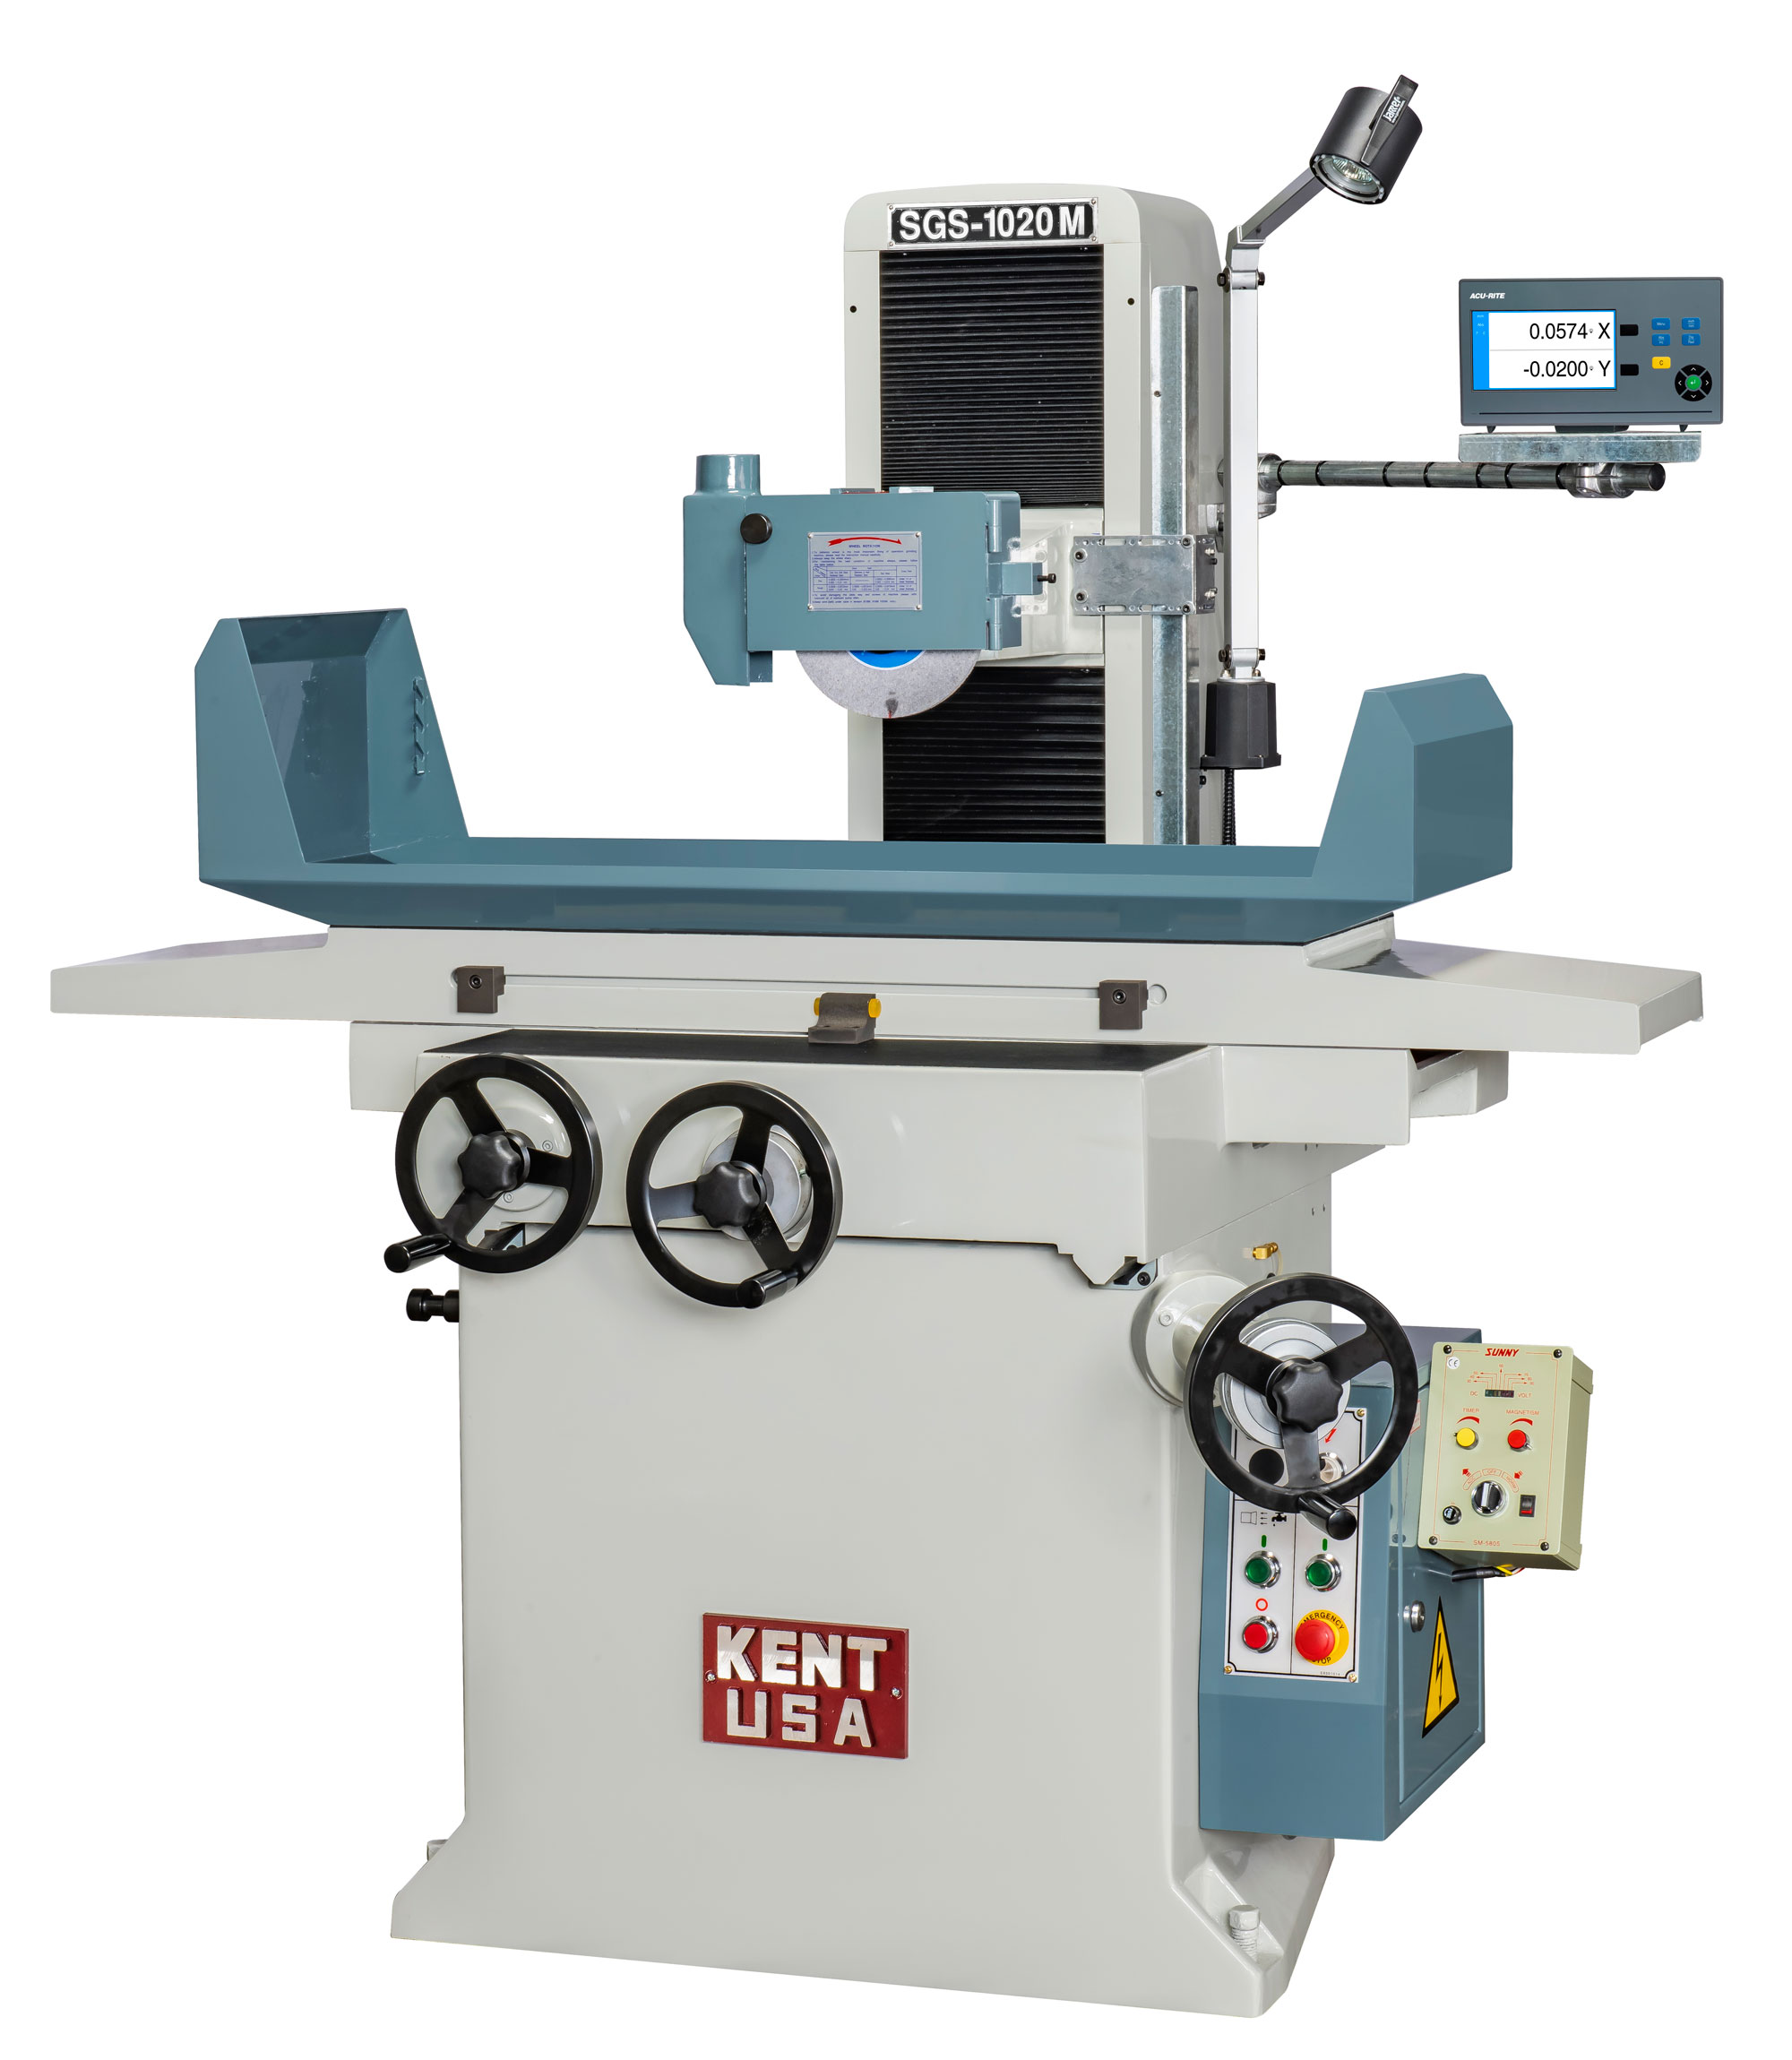 SGS-1020M-DRO100 Surface Grinder with Acu-Rite